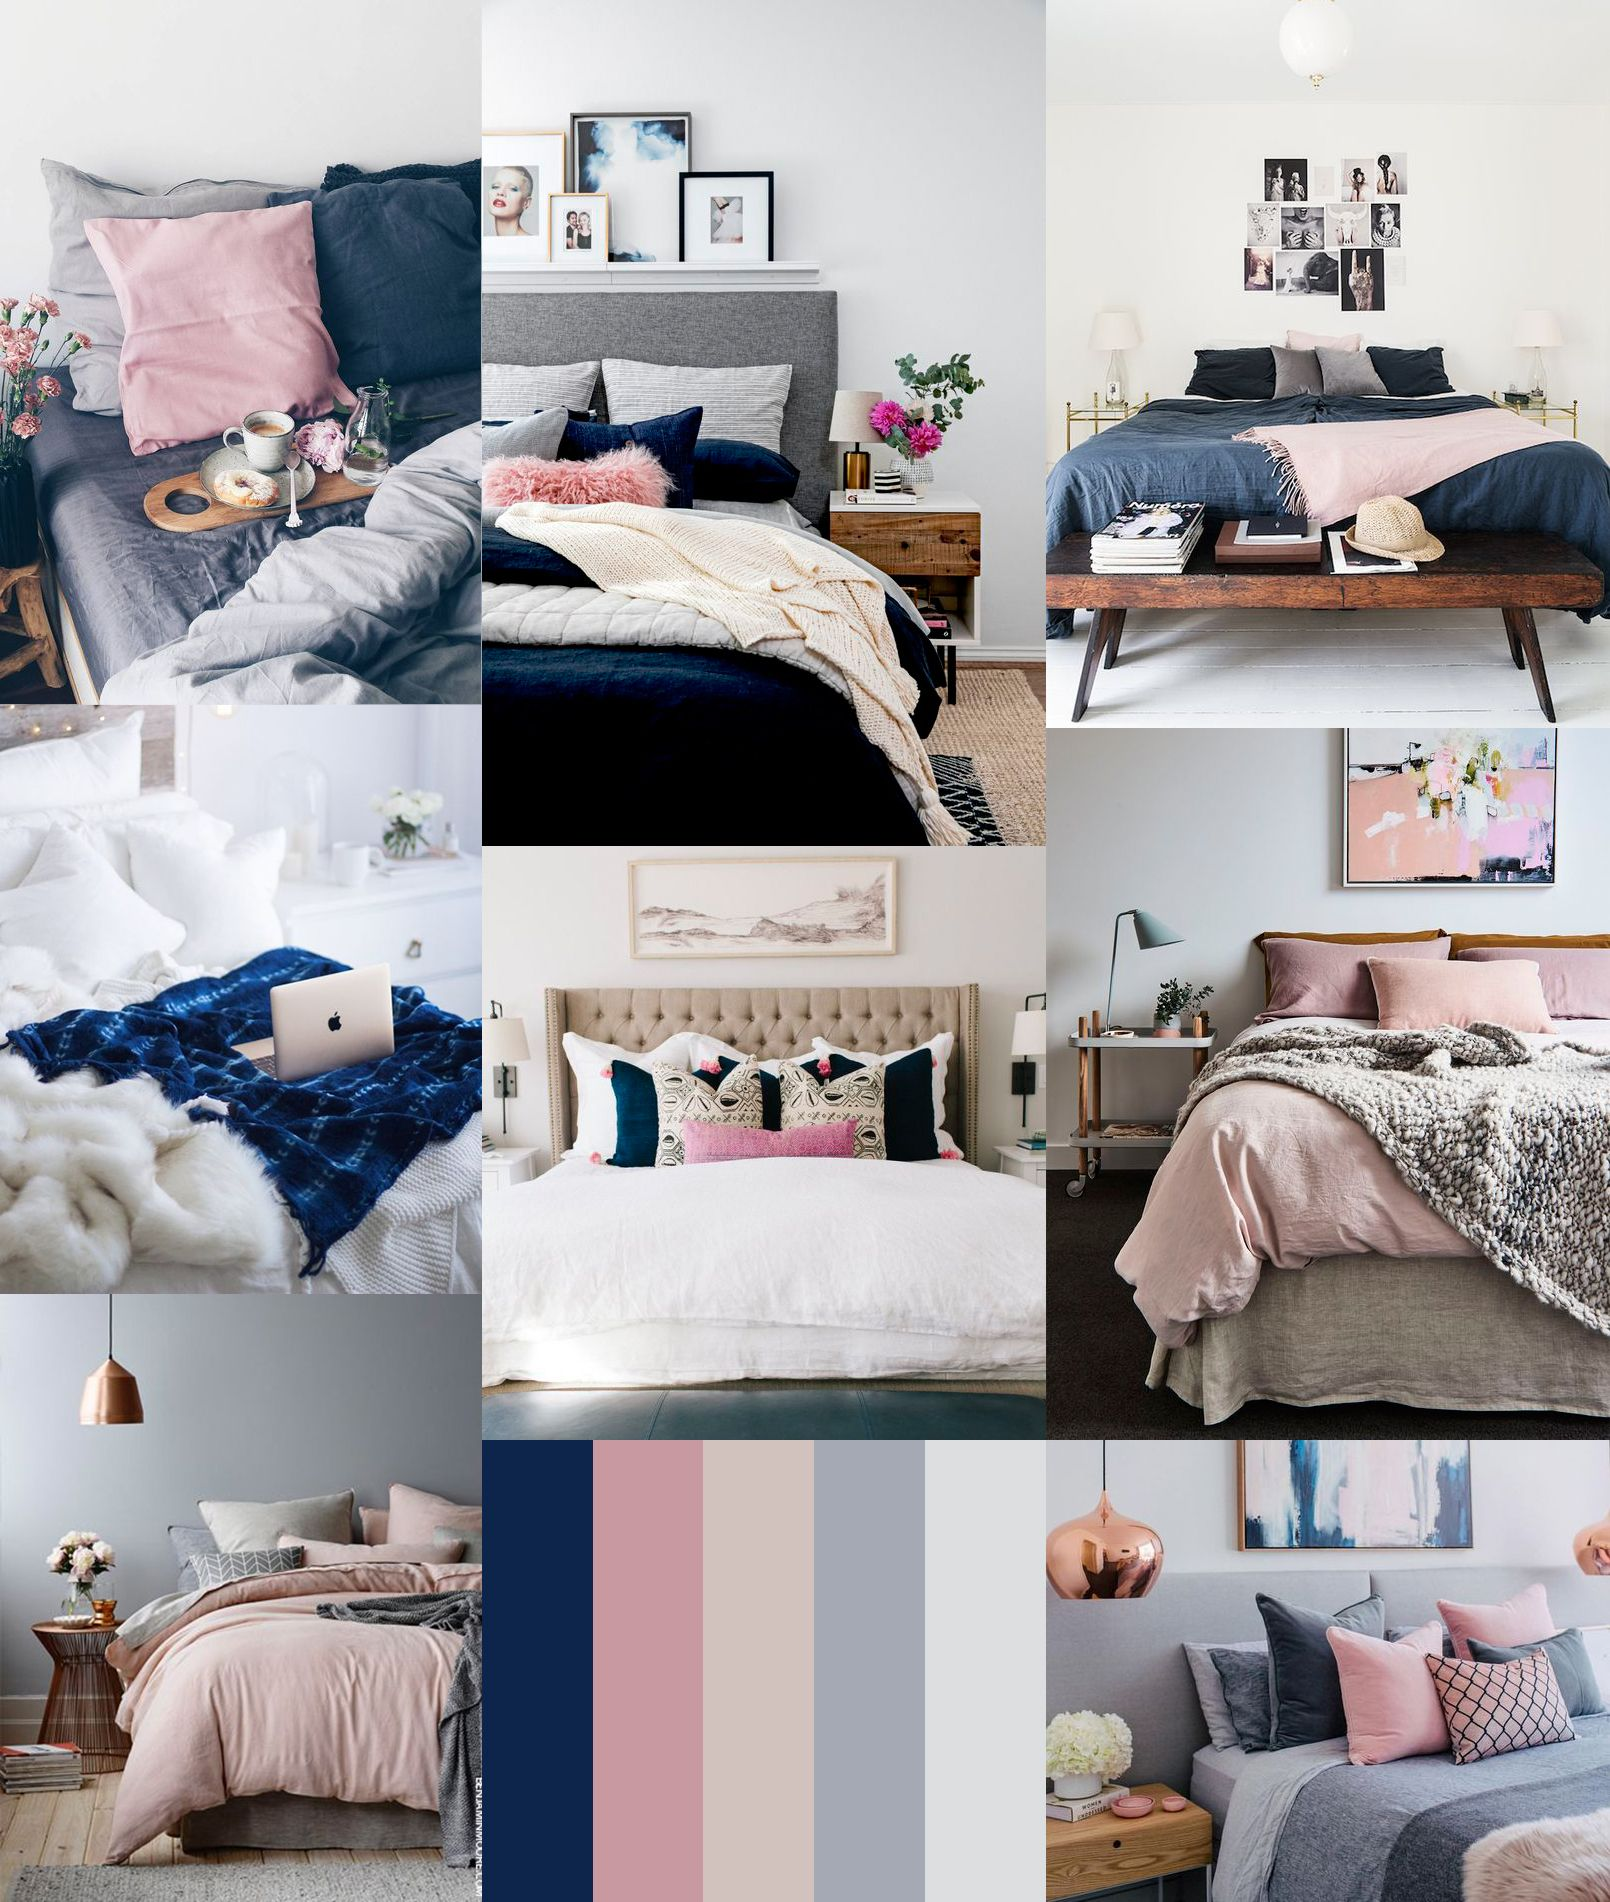 black d gray do cor bedroom and want white pin navy chic to i stuff